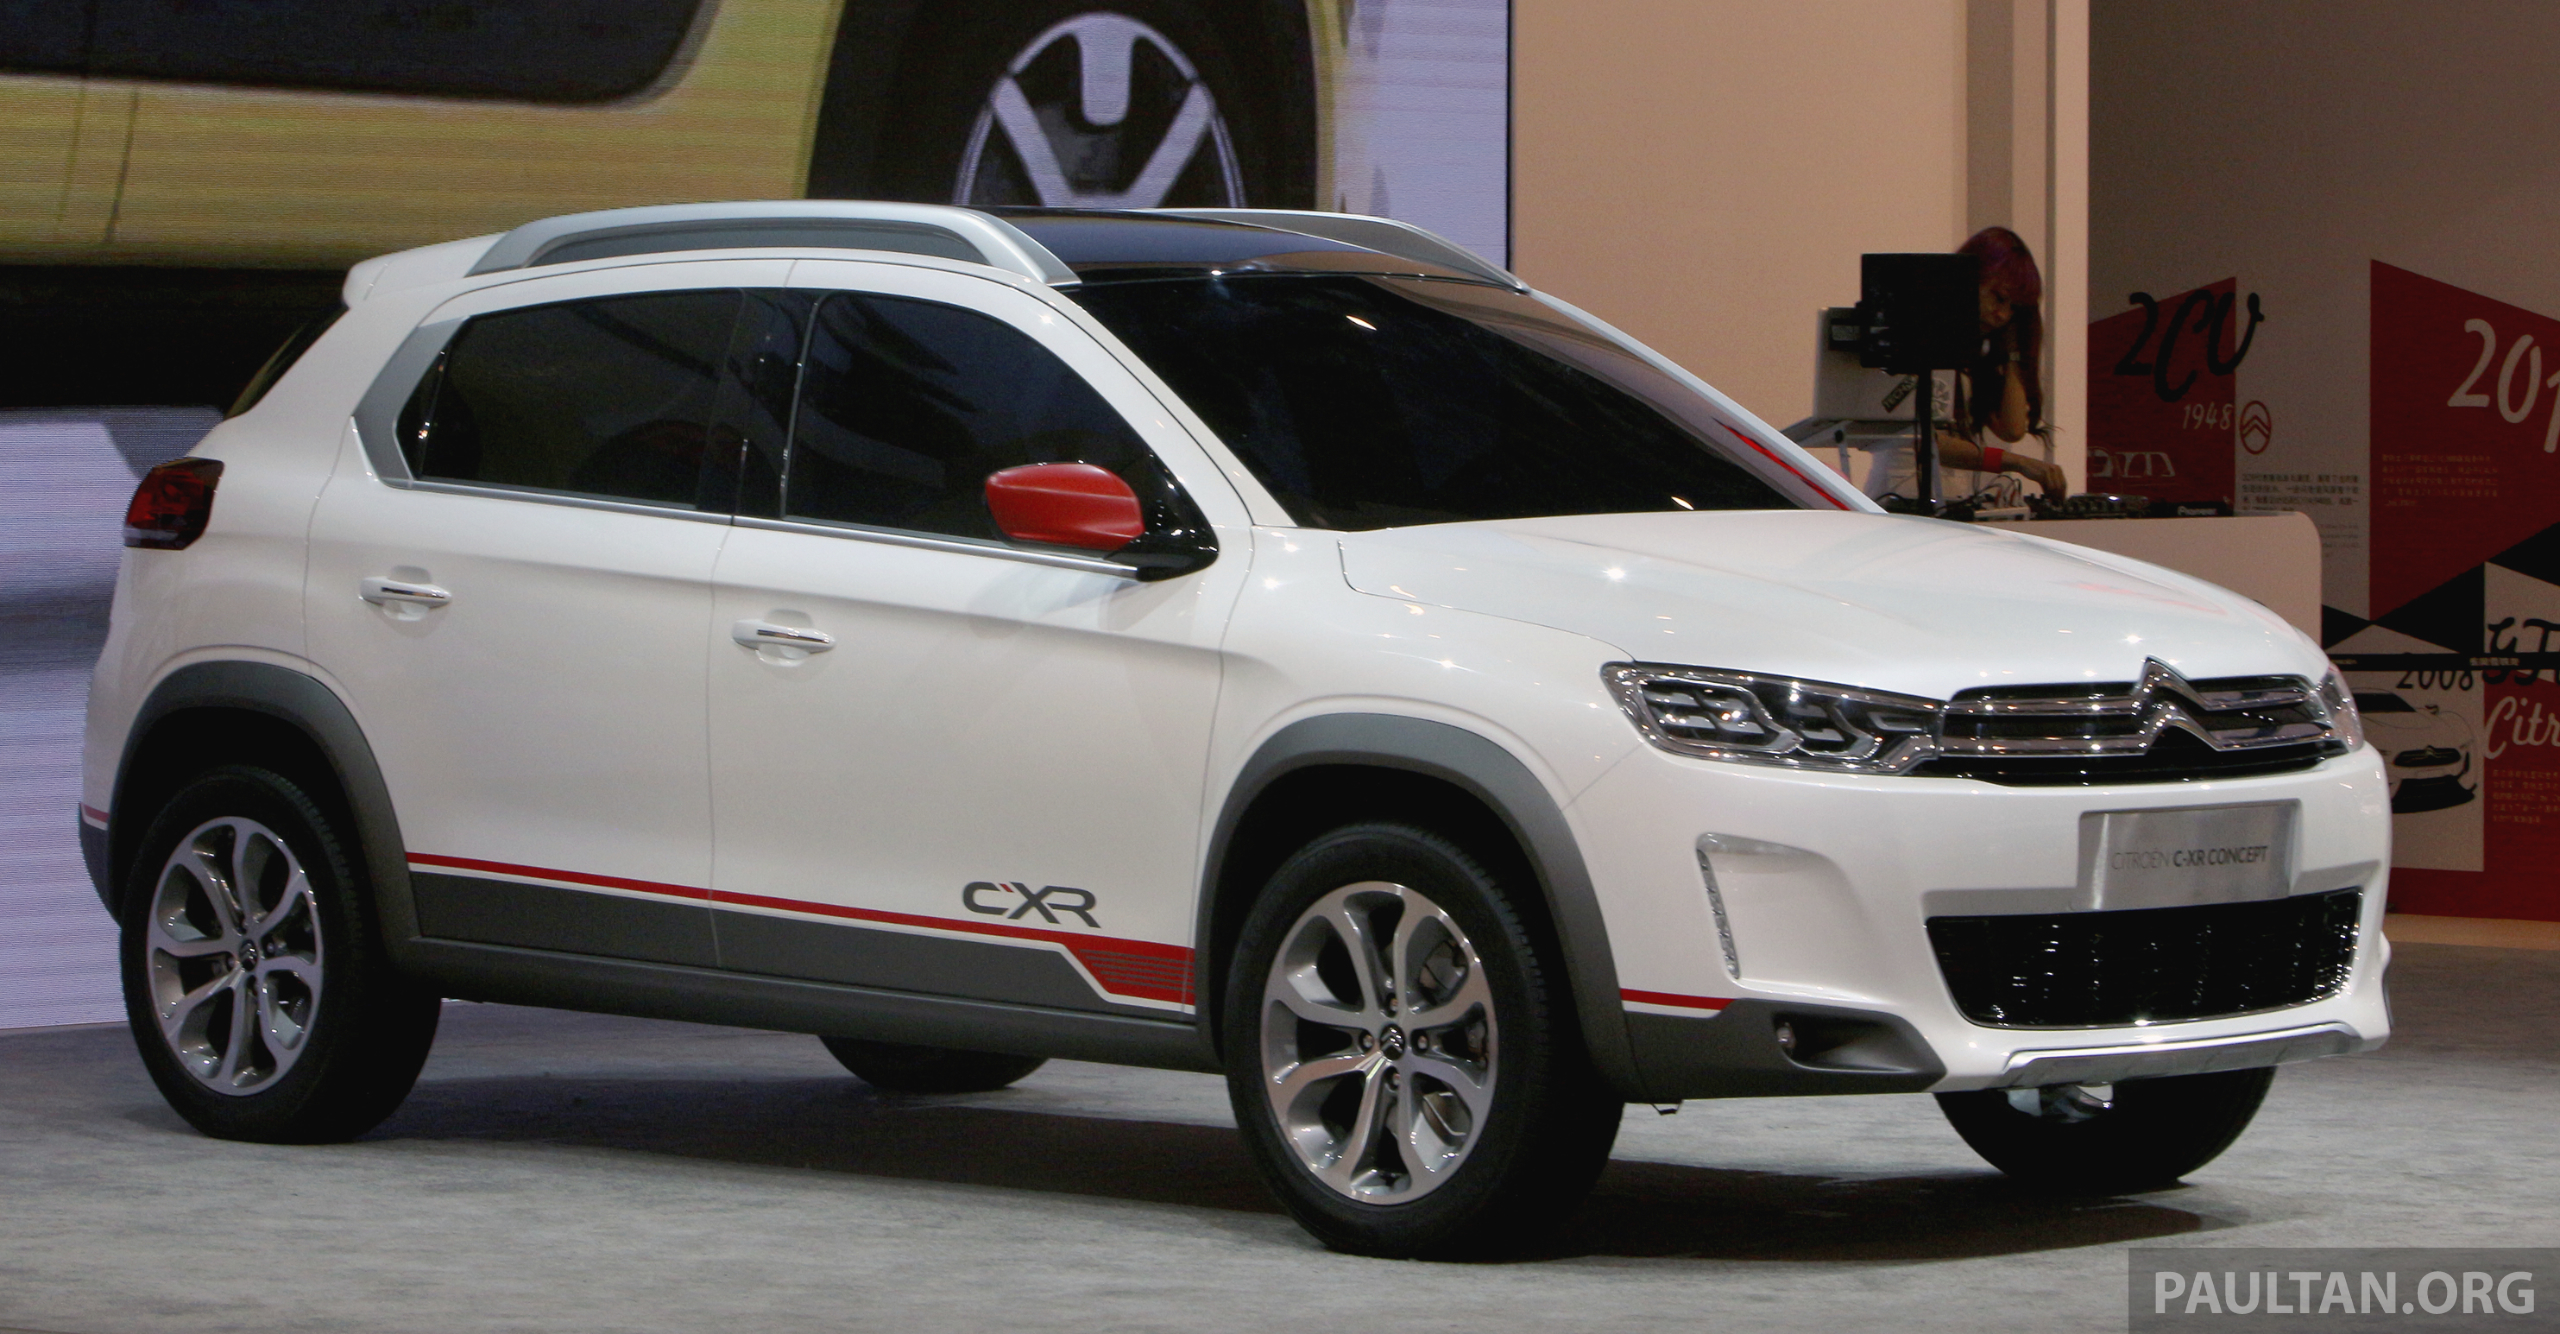 Suv >> Citroen C-XR concept SUV unveiled at Beijing show Paul Tan - Image 243253